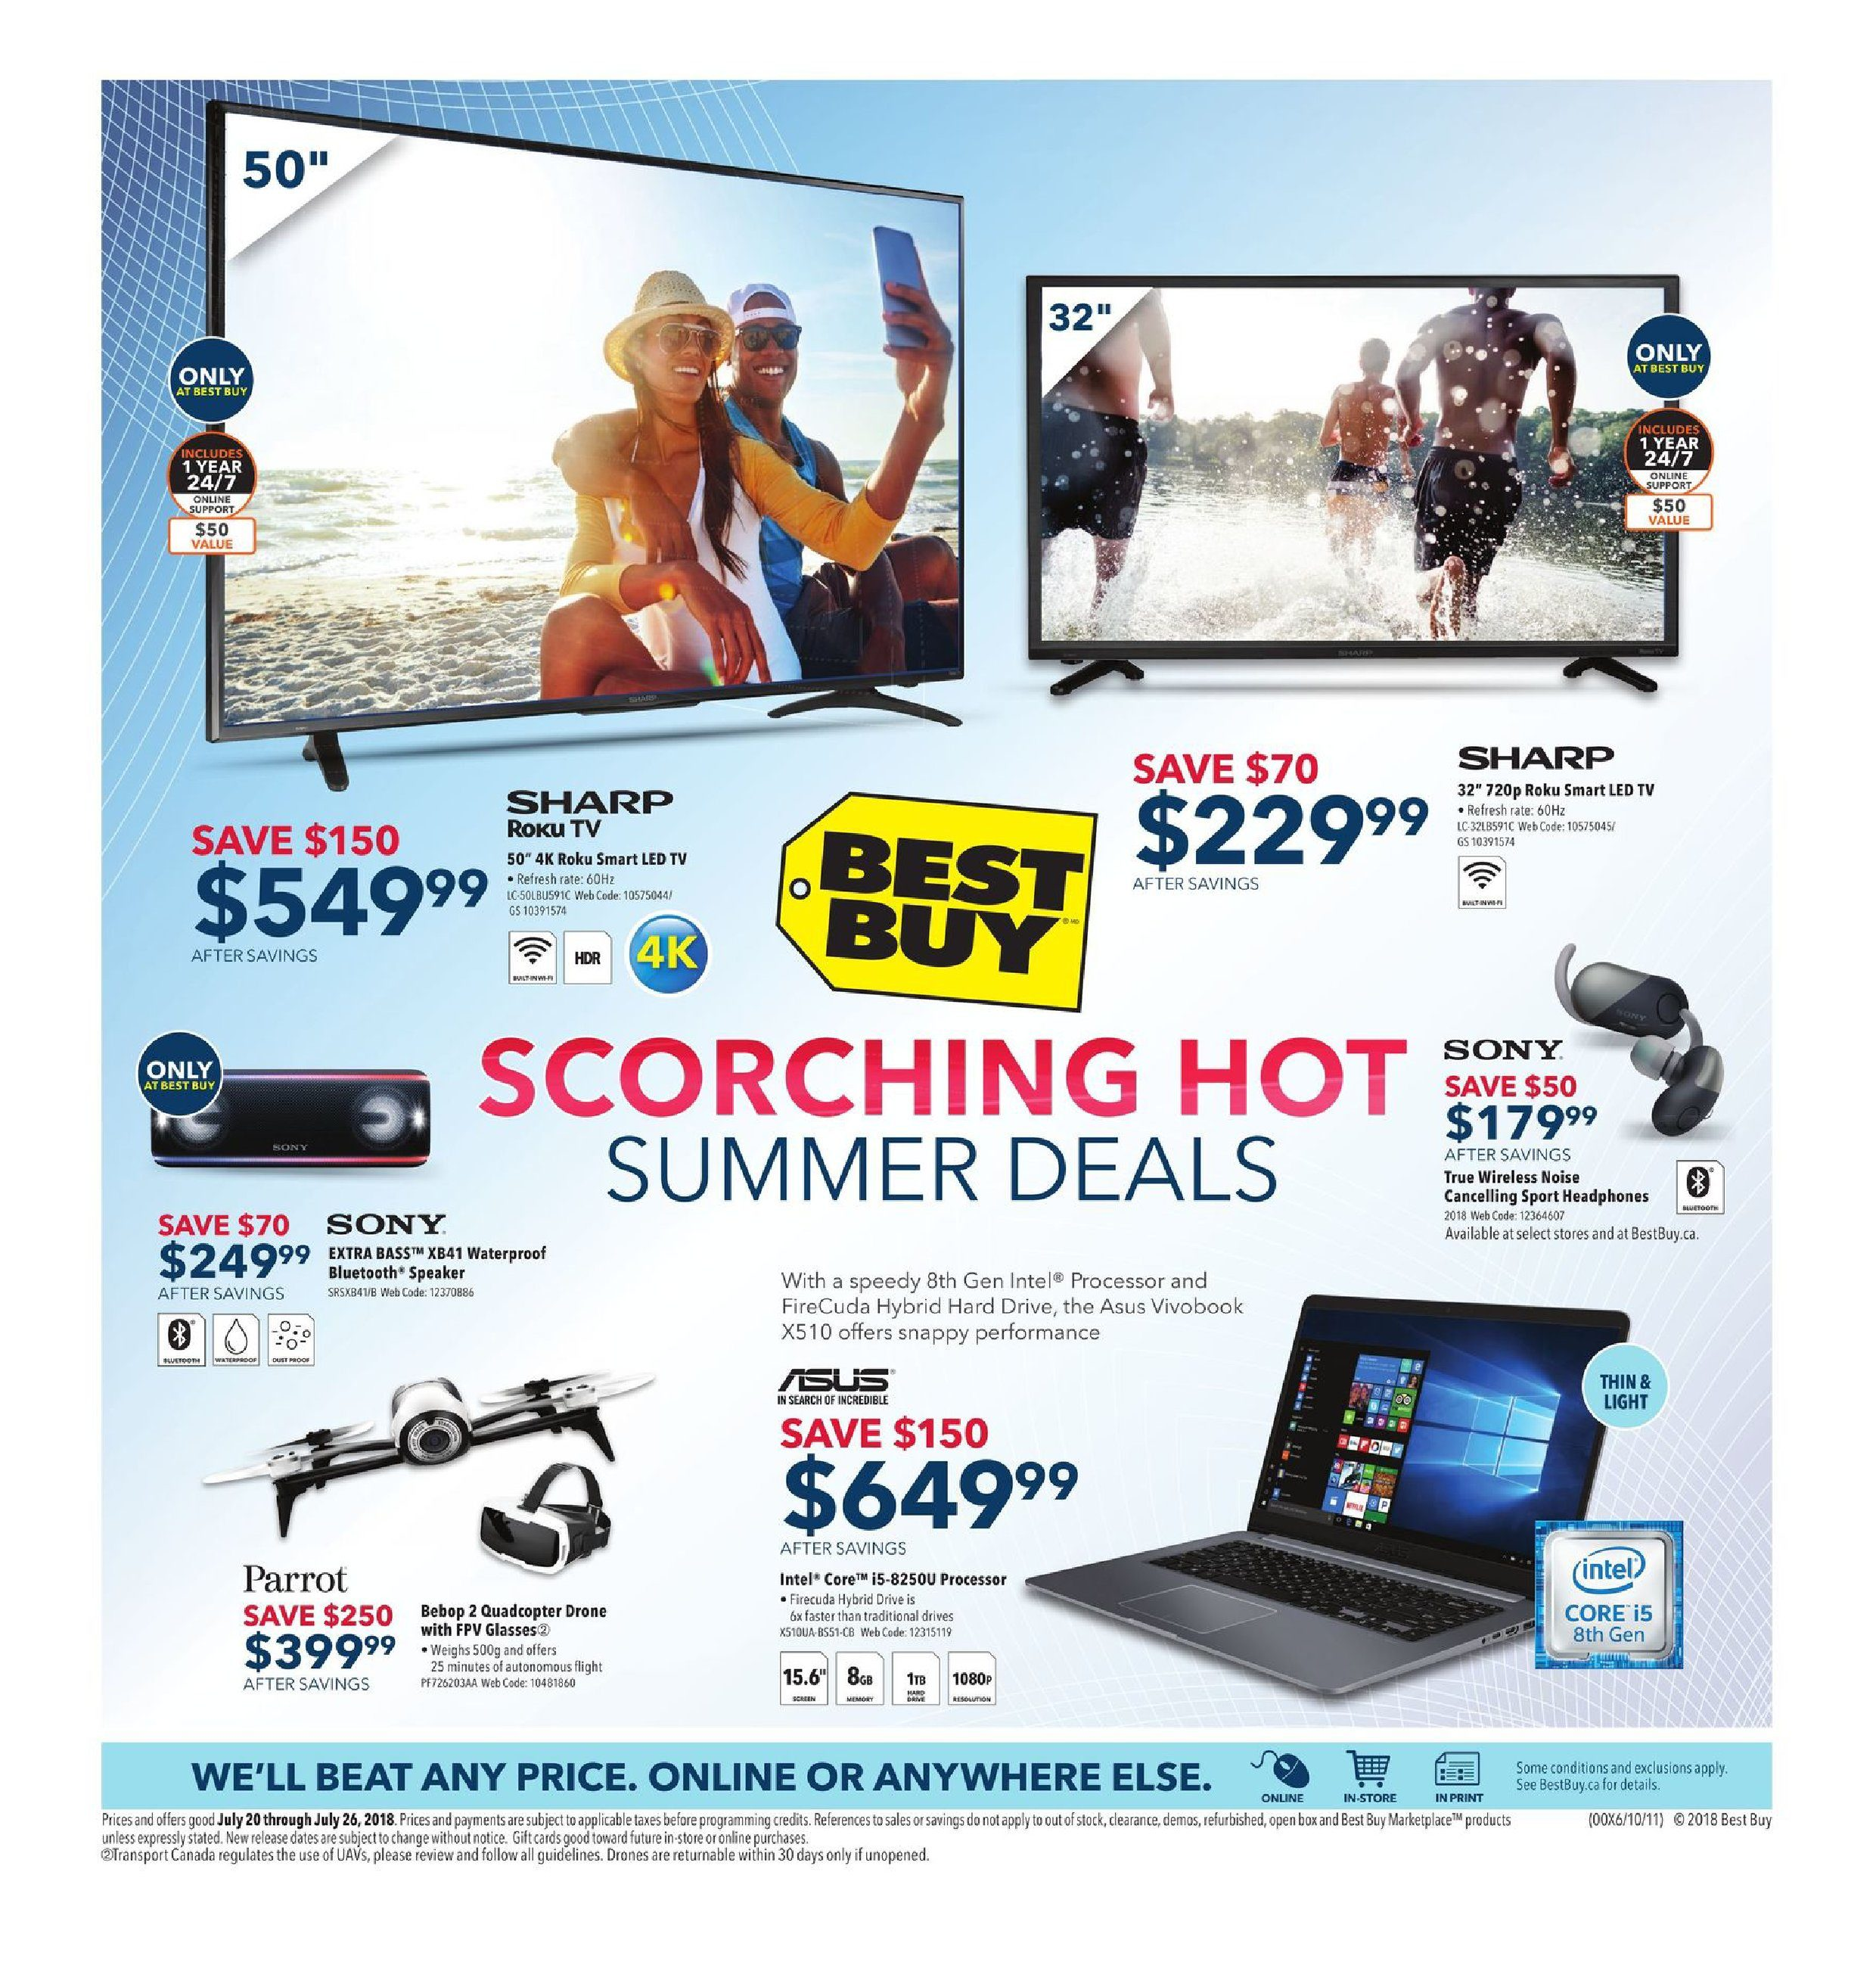 Best Buy Weekly Flyer Scorching Hot Summer Deals Jul 20 30 Amp Go Power Automatic Transfer Switch Ts30 Voltage Pro 26